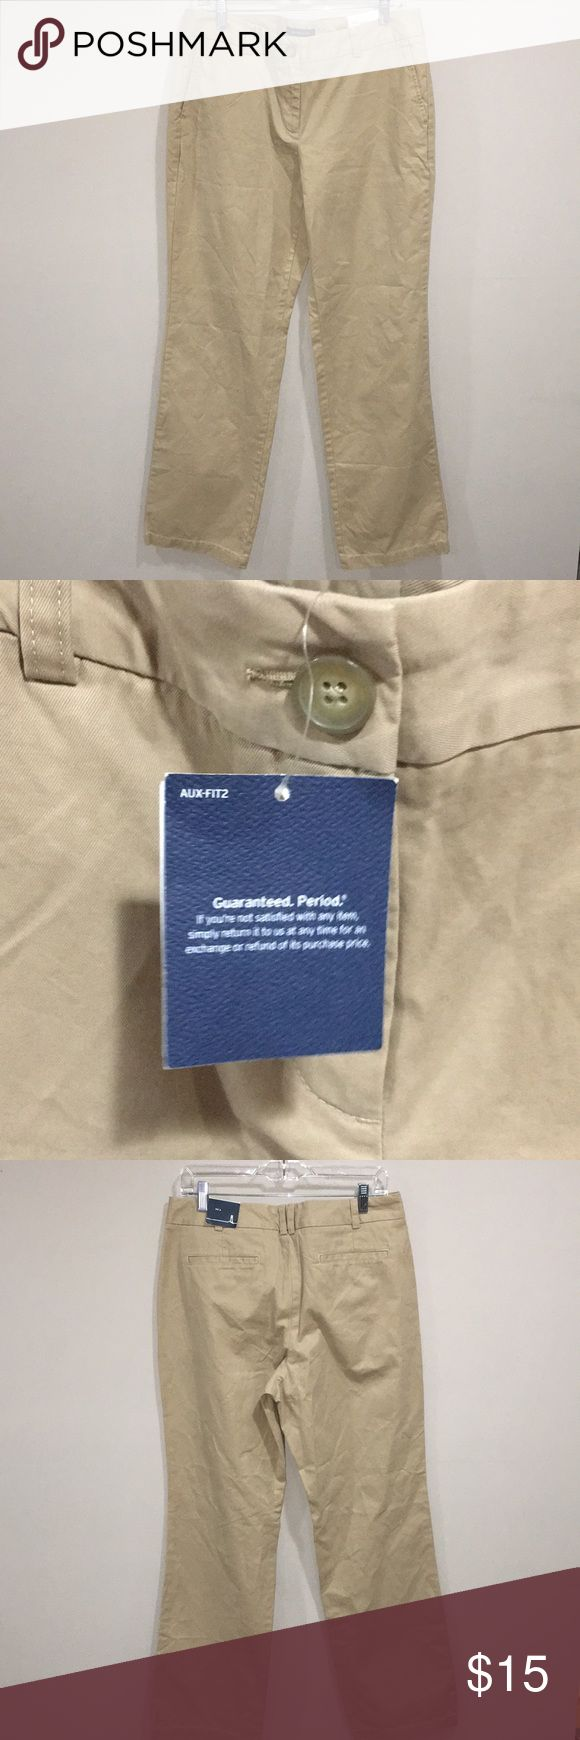 NWT MENS KHAKI PANTS BRAND NEW WITH TAGS Lands' End Pants Chinos & Khakis